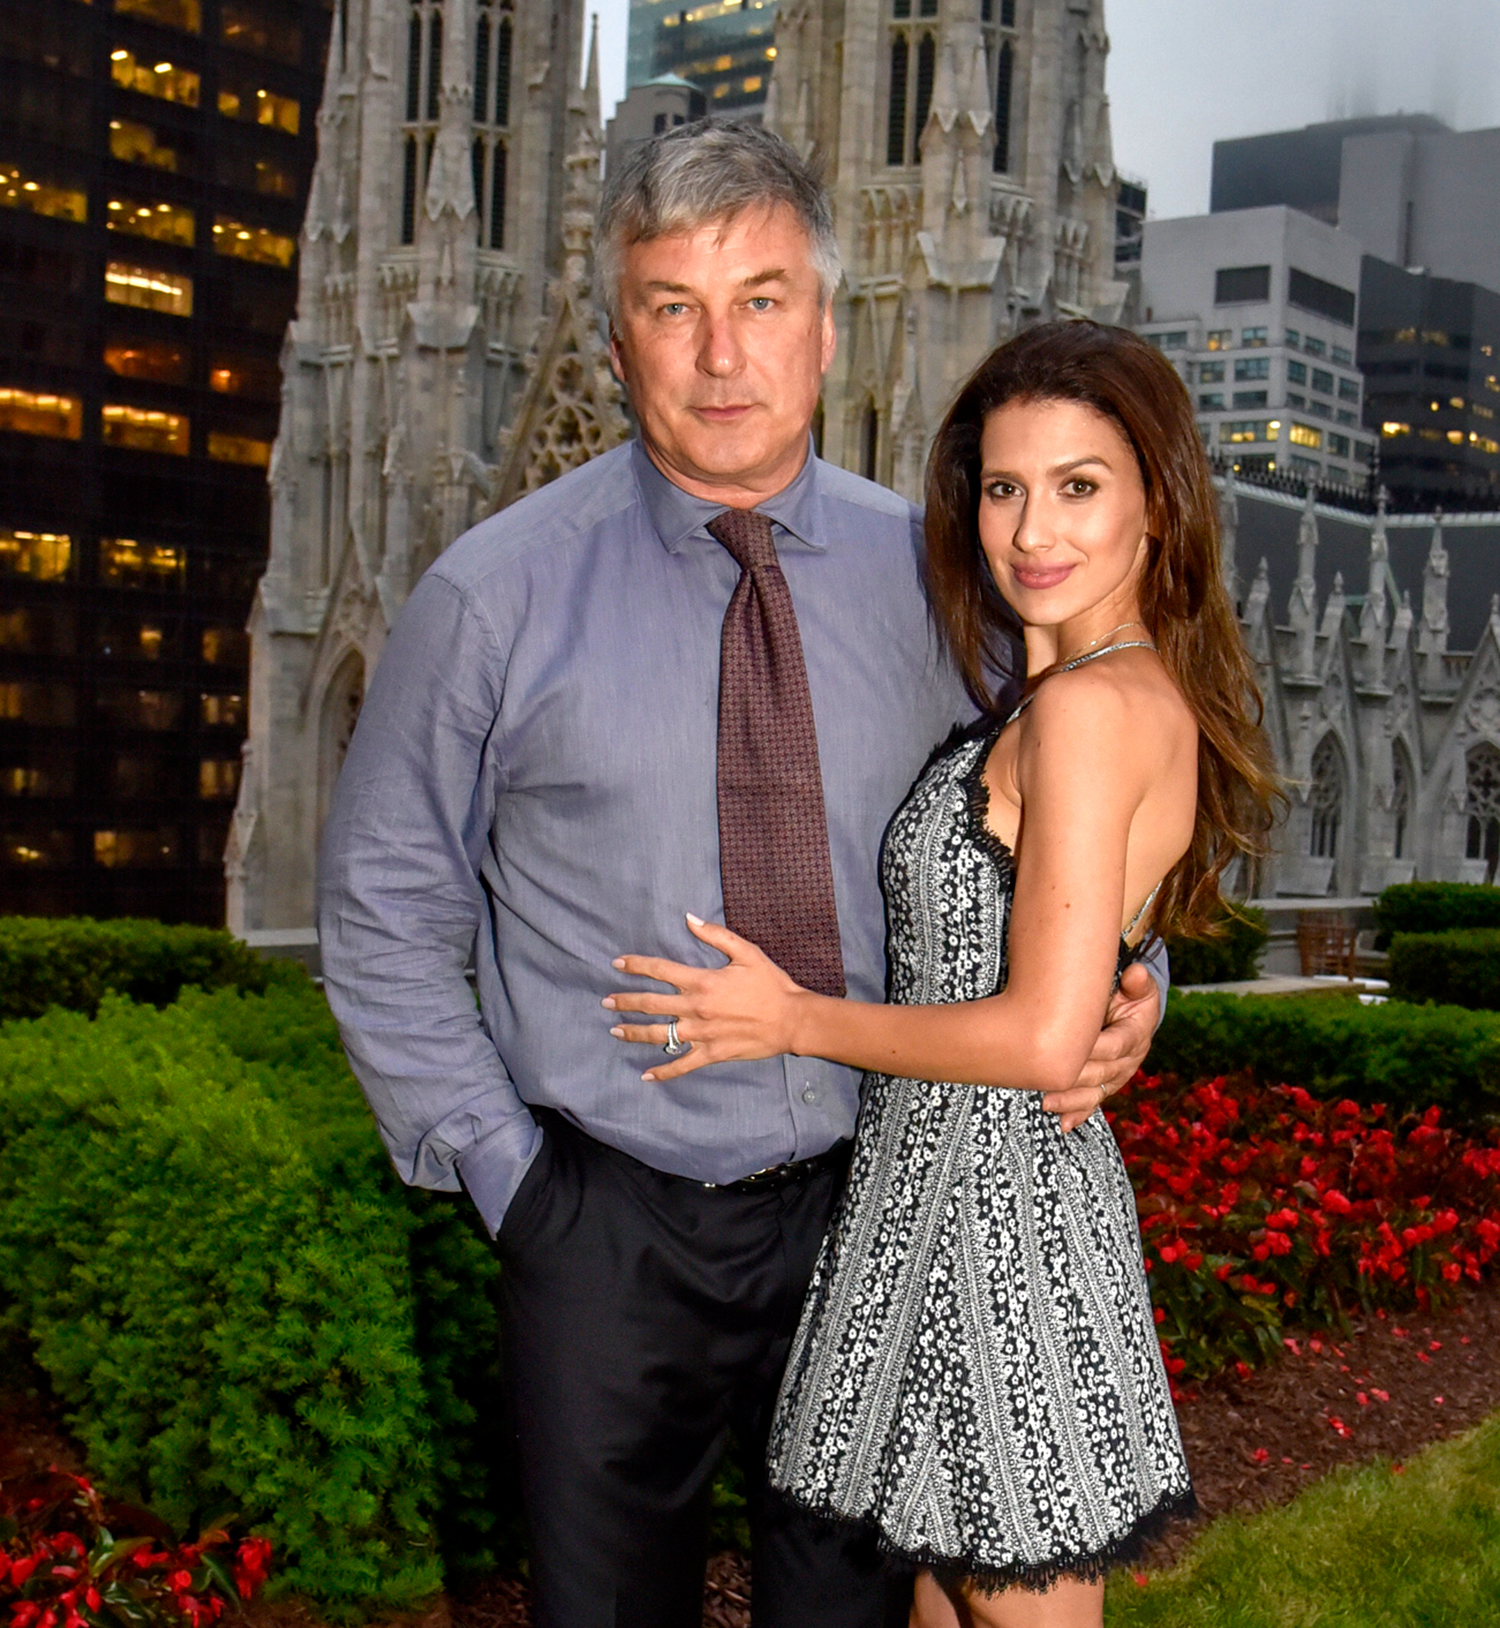 Alec Baldwin & Wife Hilaria Welcome a Baby Boy!